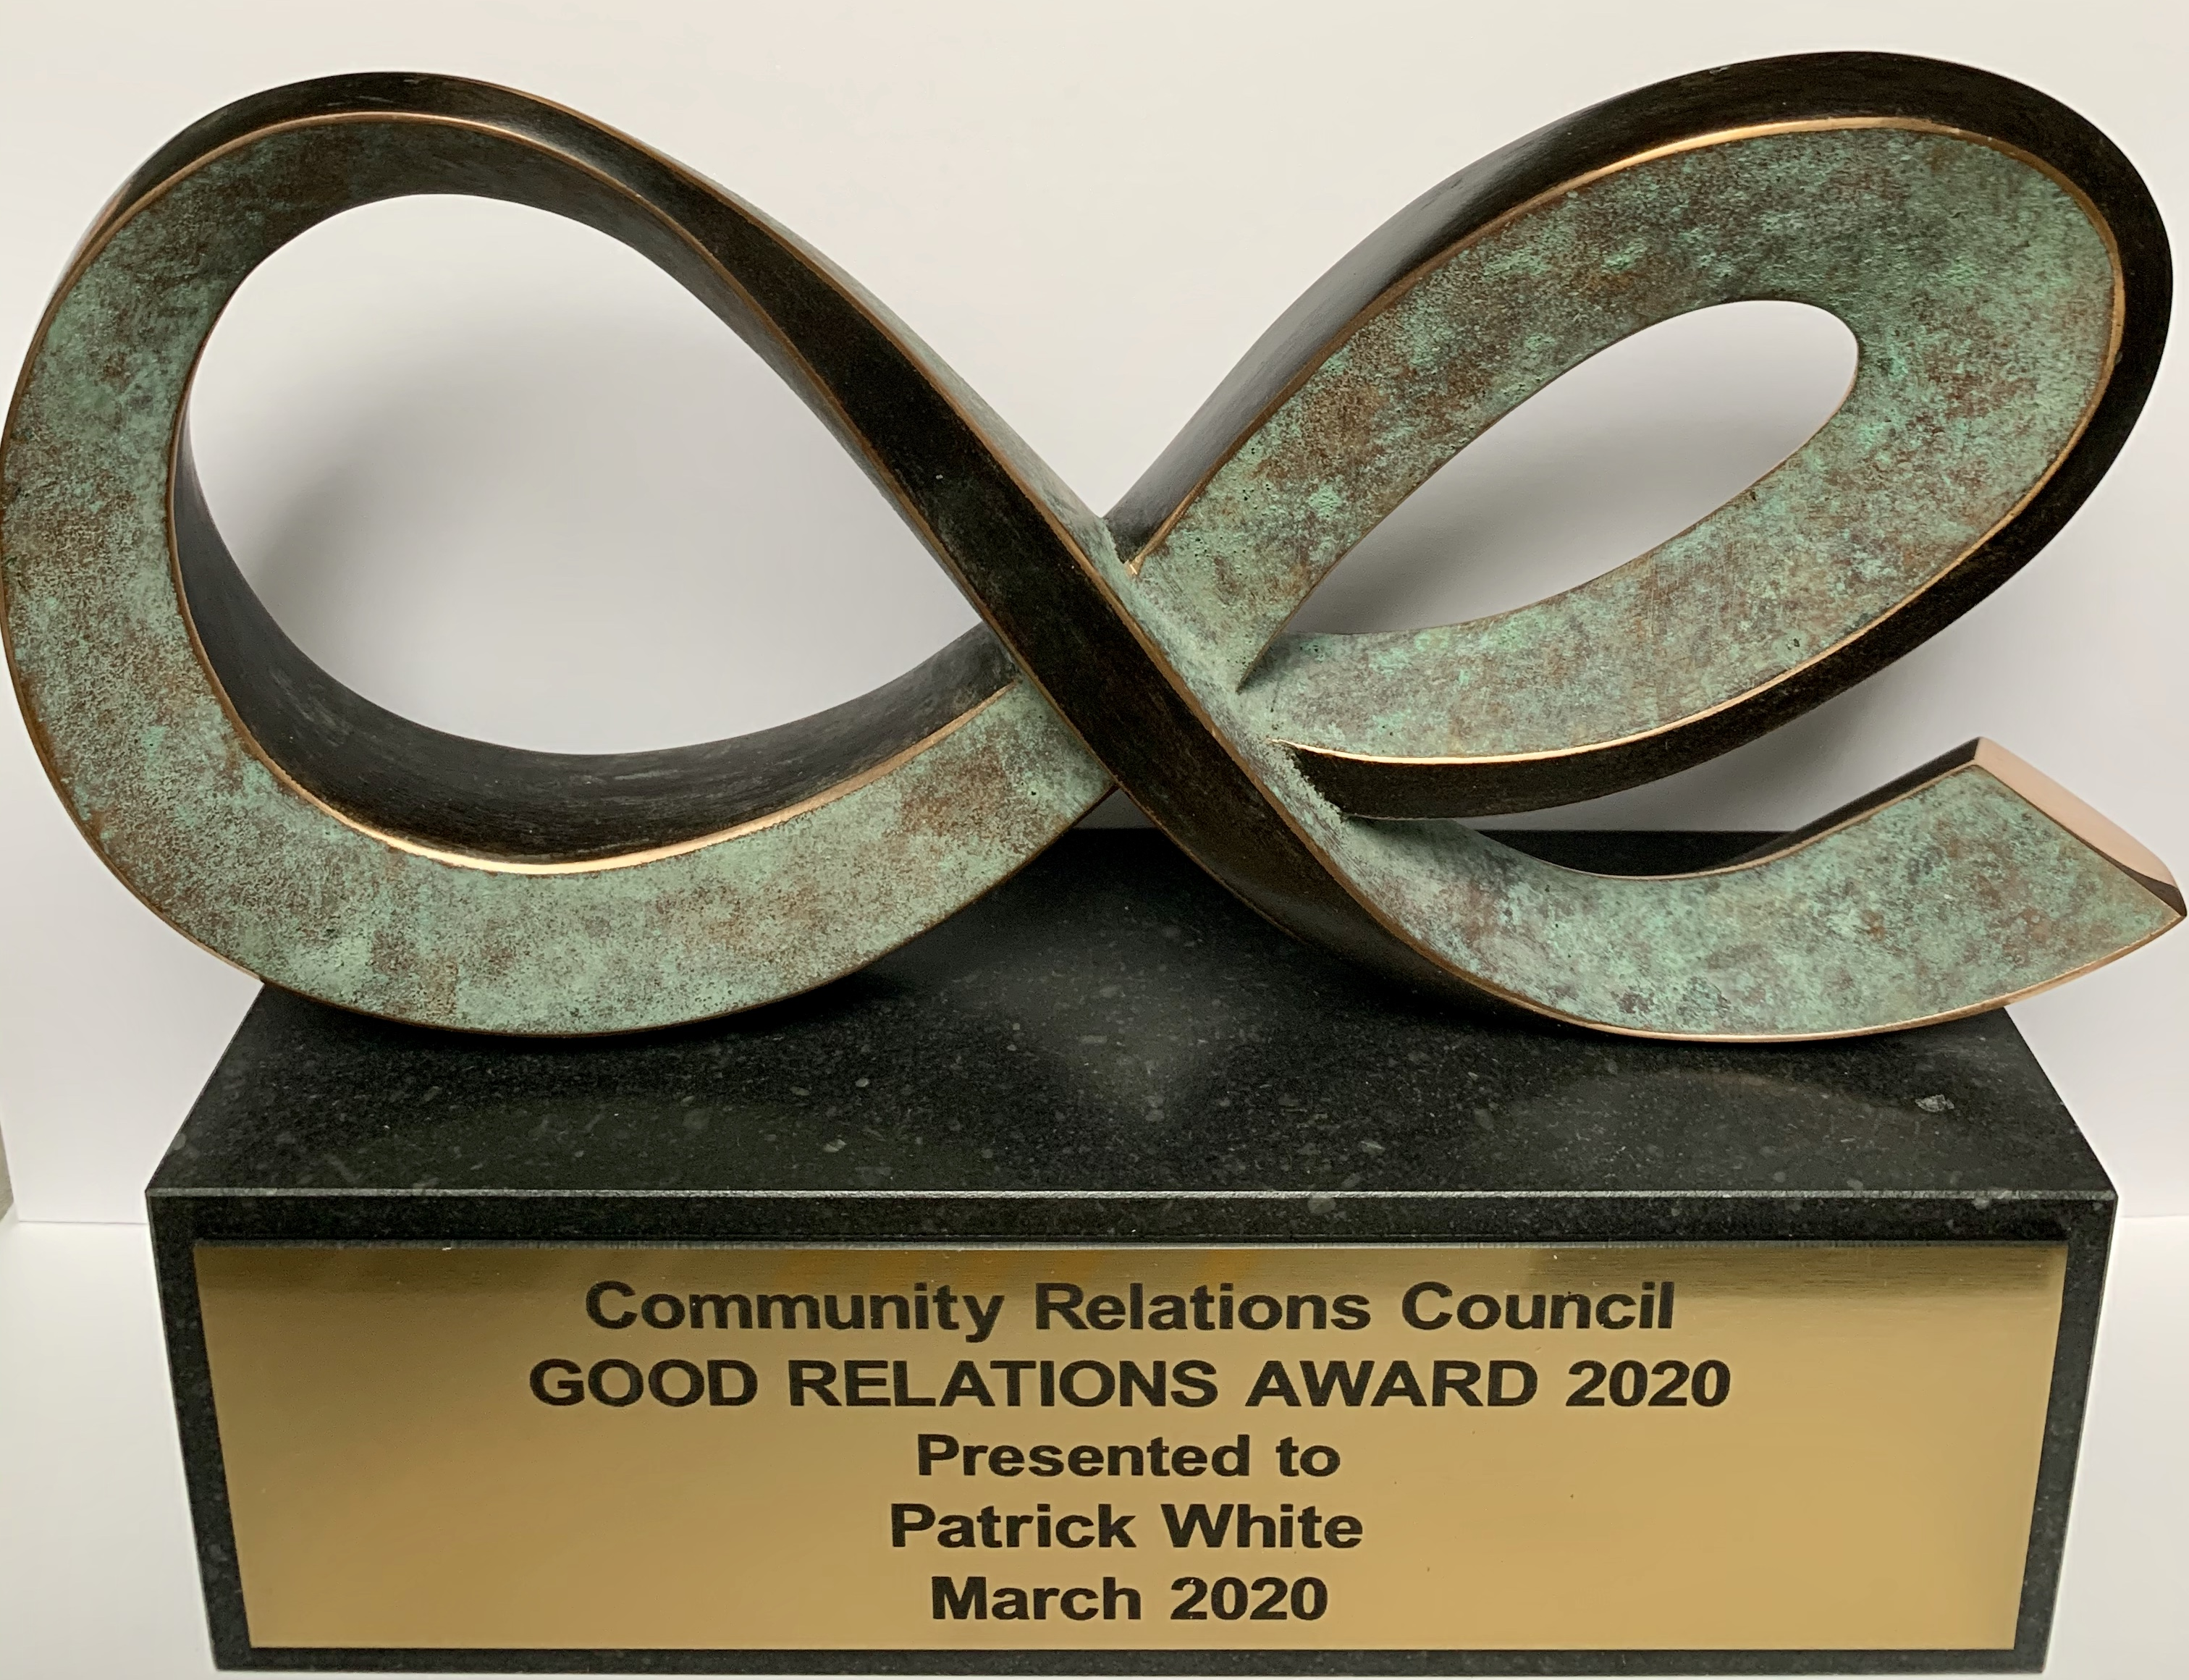 Good Relations Award trophy 2020 | CRC NI